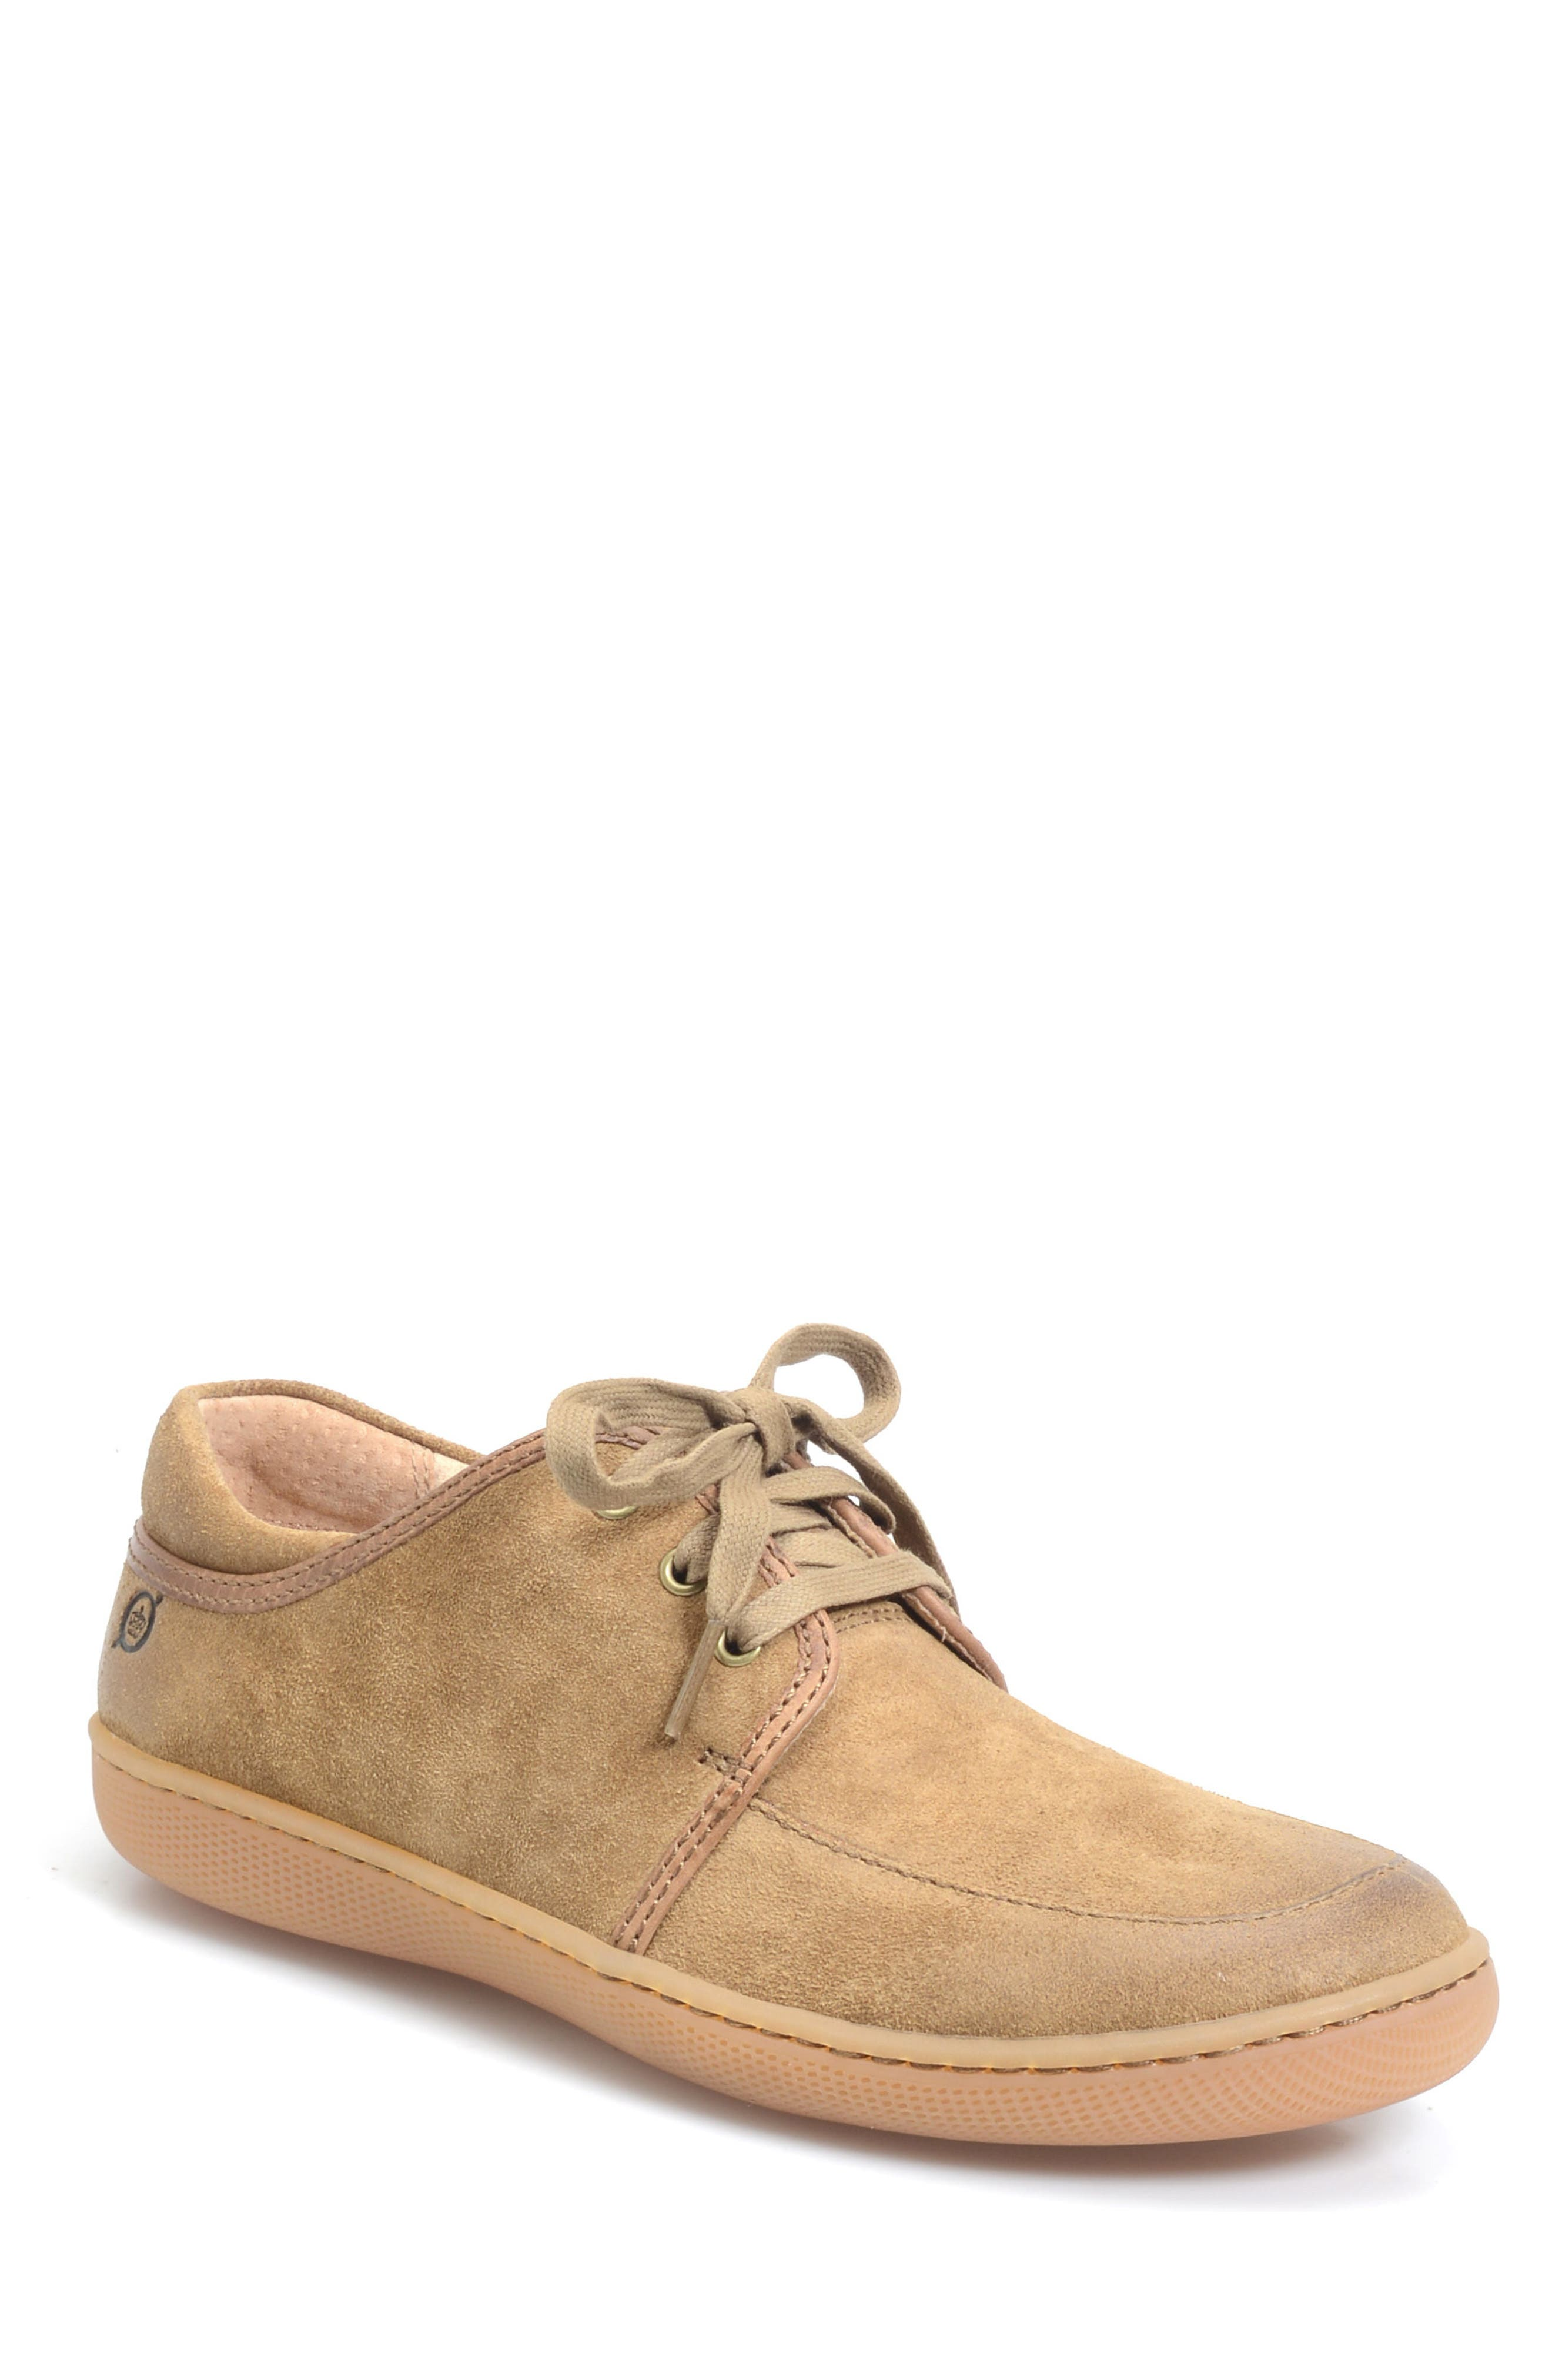 Murici Sneaker,                         Main,                         color, 200